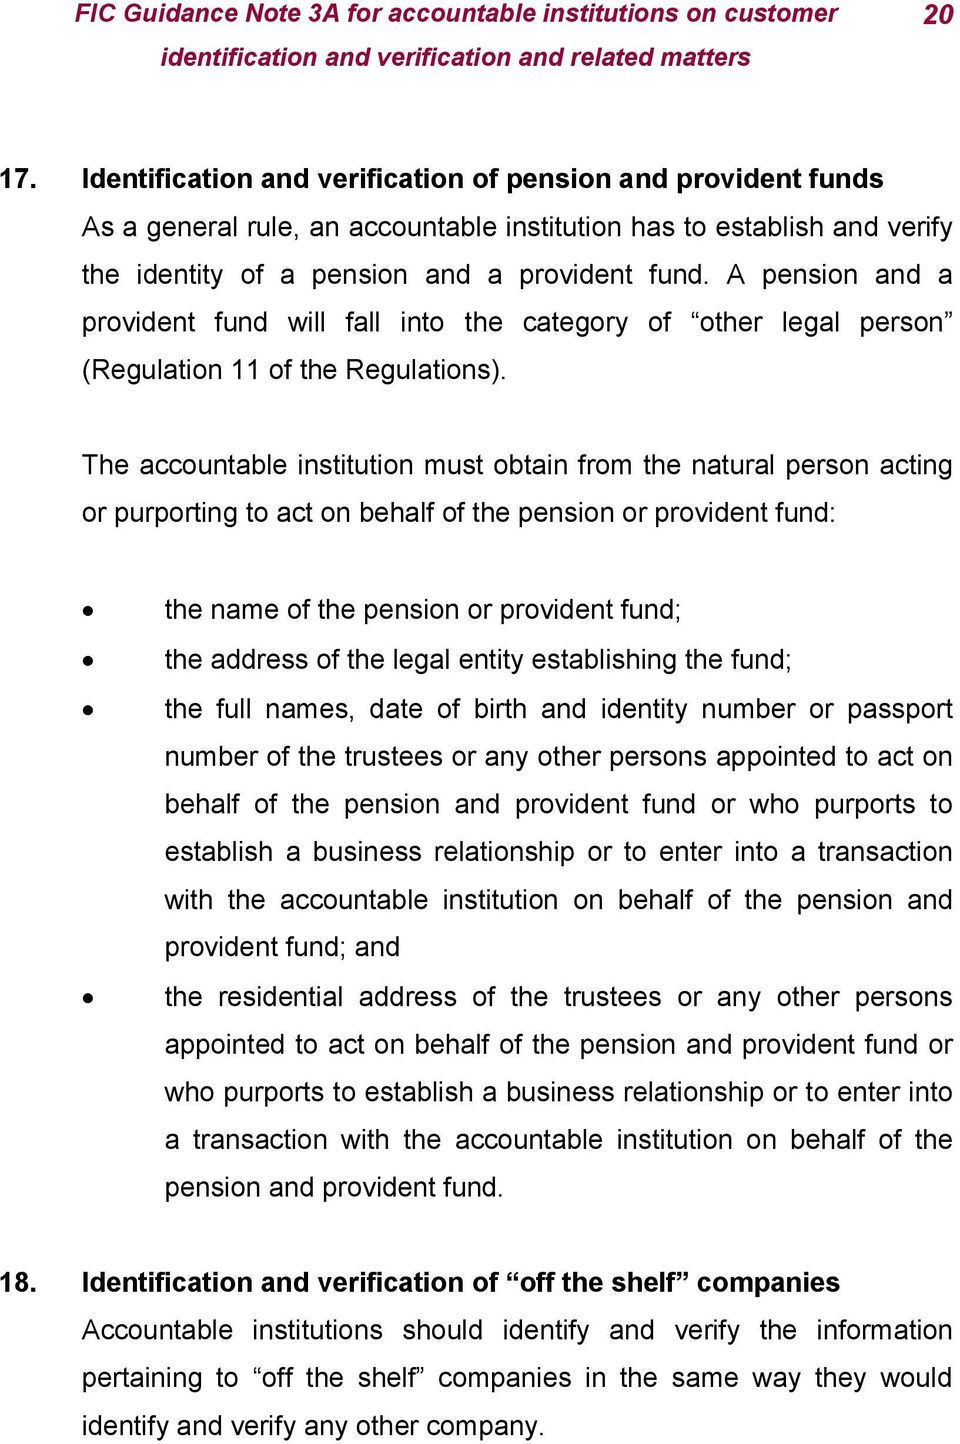 The accountable institution must obtain from the natural person acting or purporting to act on behalf of the pension or provident fund: the name of the pension or provident fund; the address of the